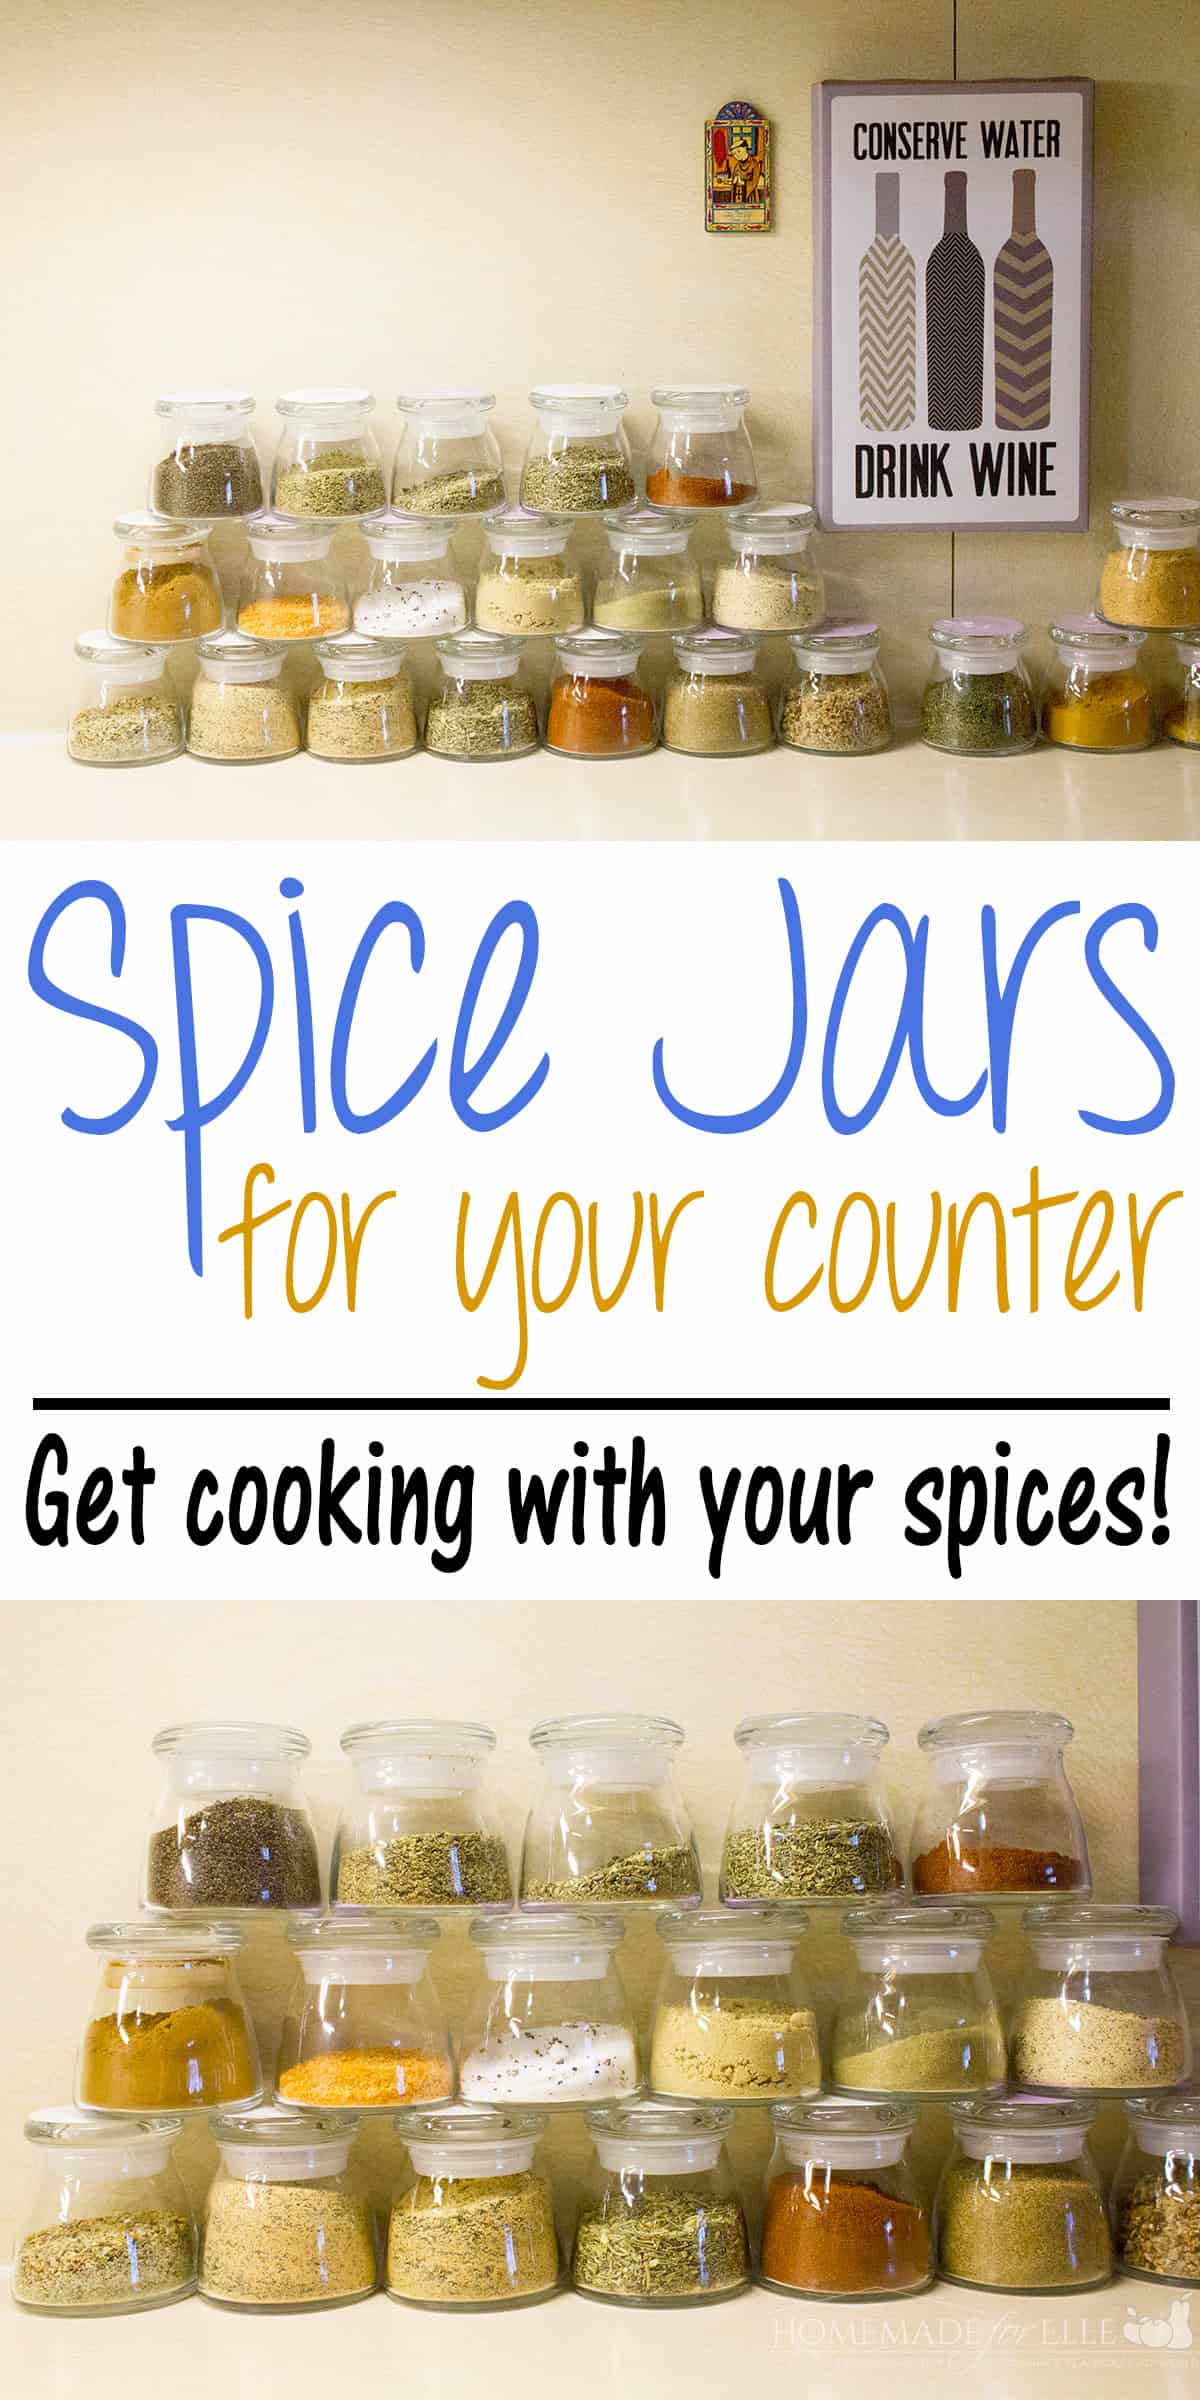 spice jars for your counters